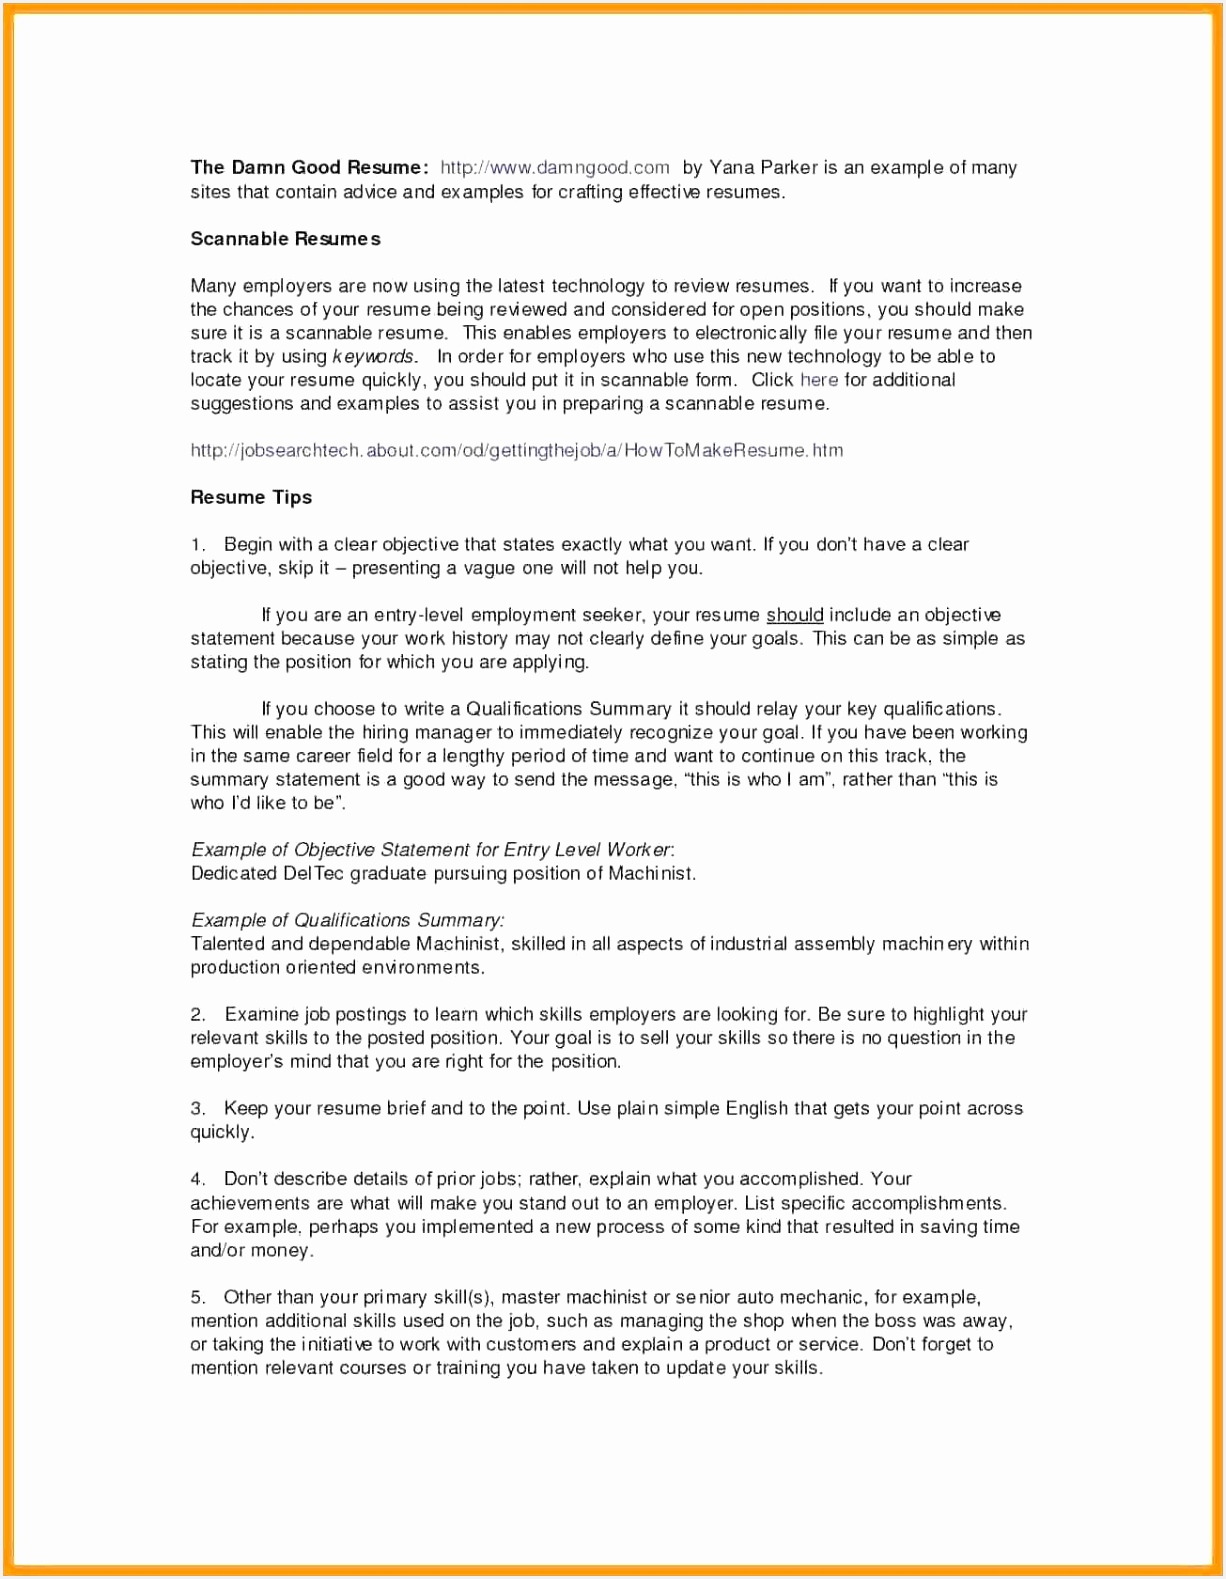 Free Collection Cover Letter Template Teacher New Resume Sample Resume for Teachers Example Professional Resume Templates 15791226gEqhi